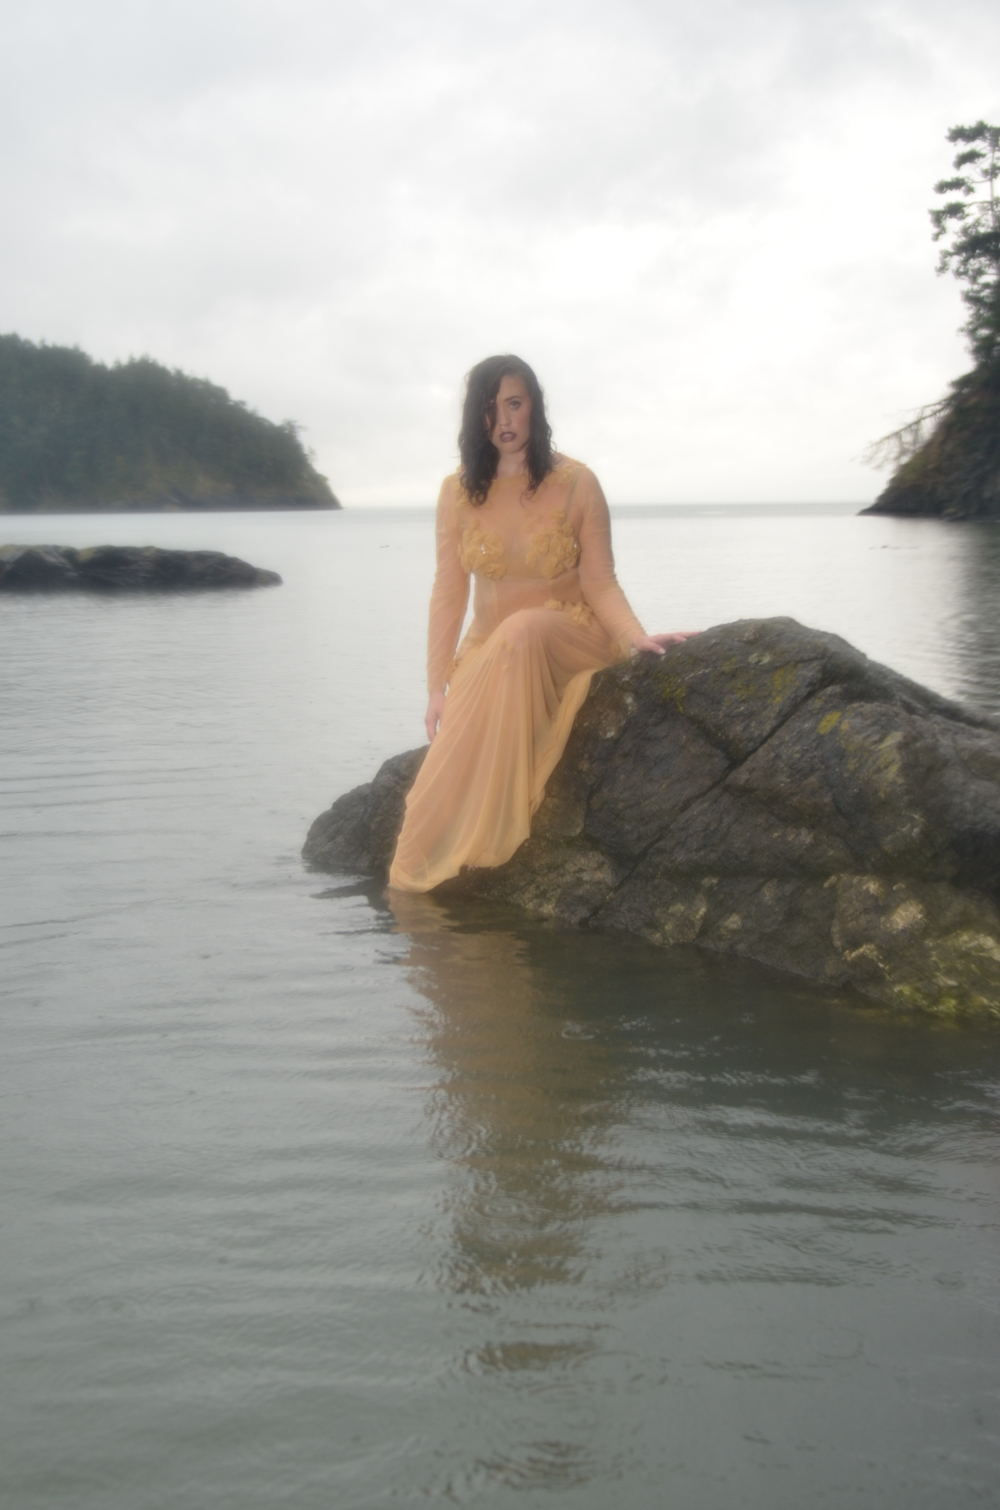 Ms. Grace at Deception Pass